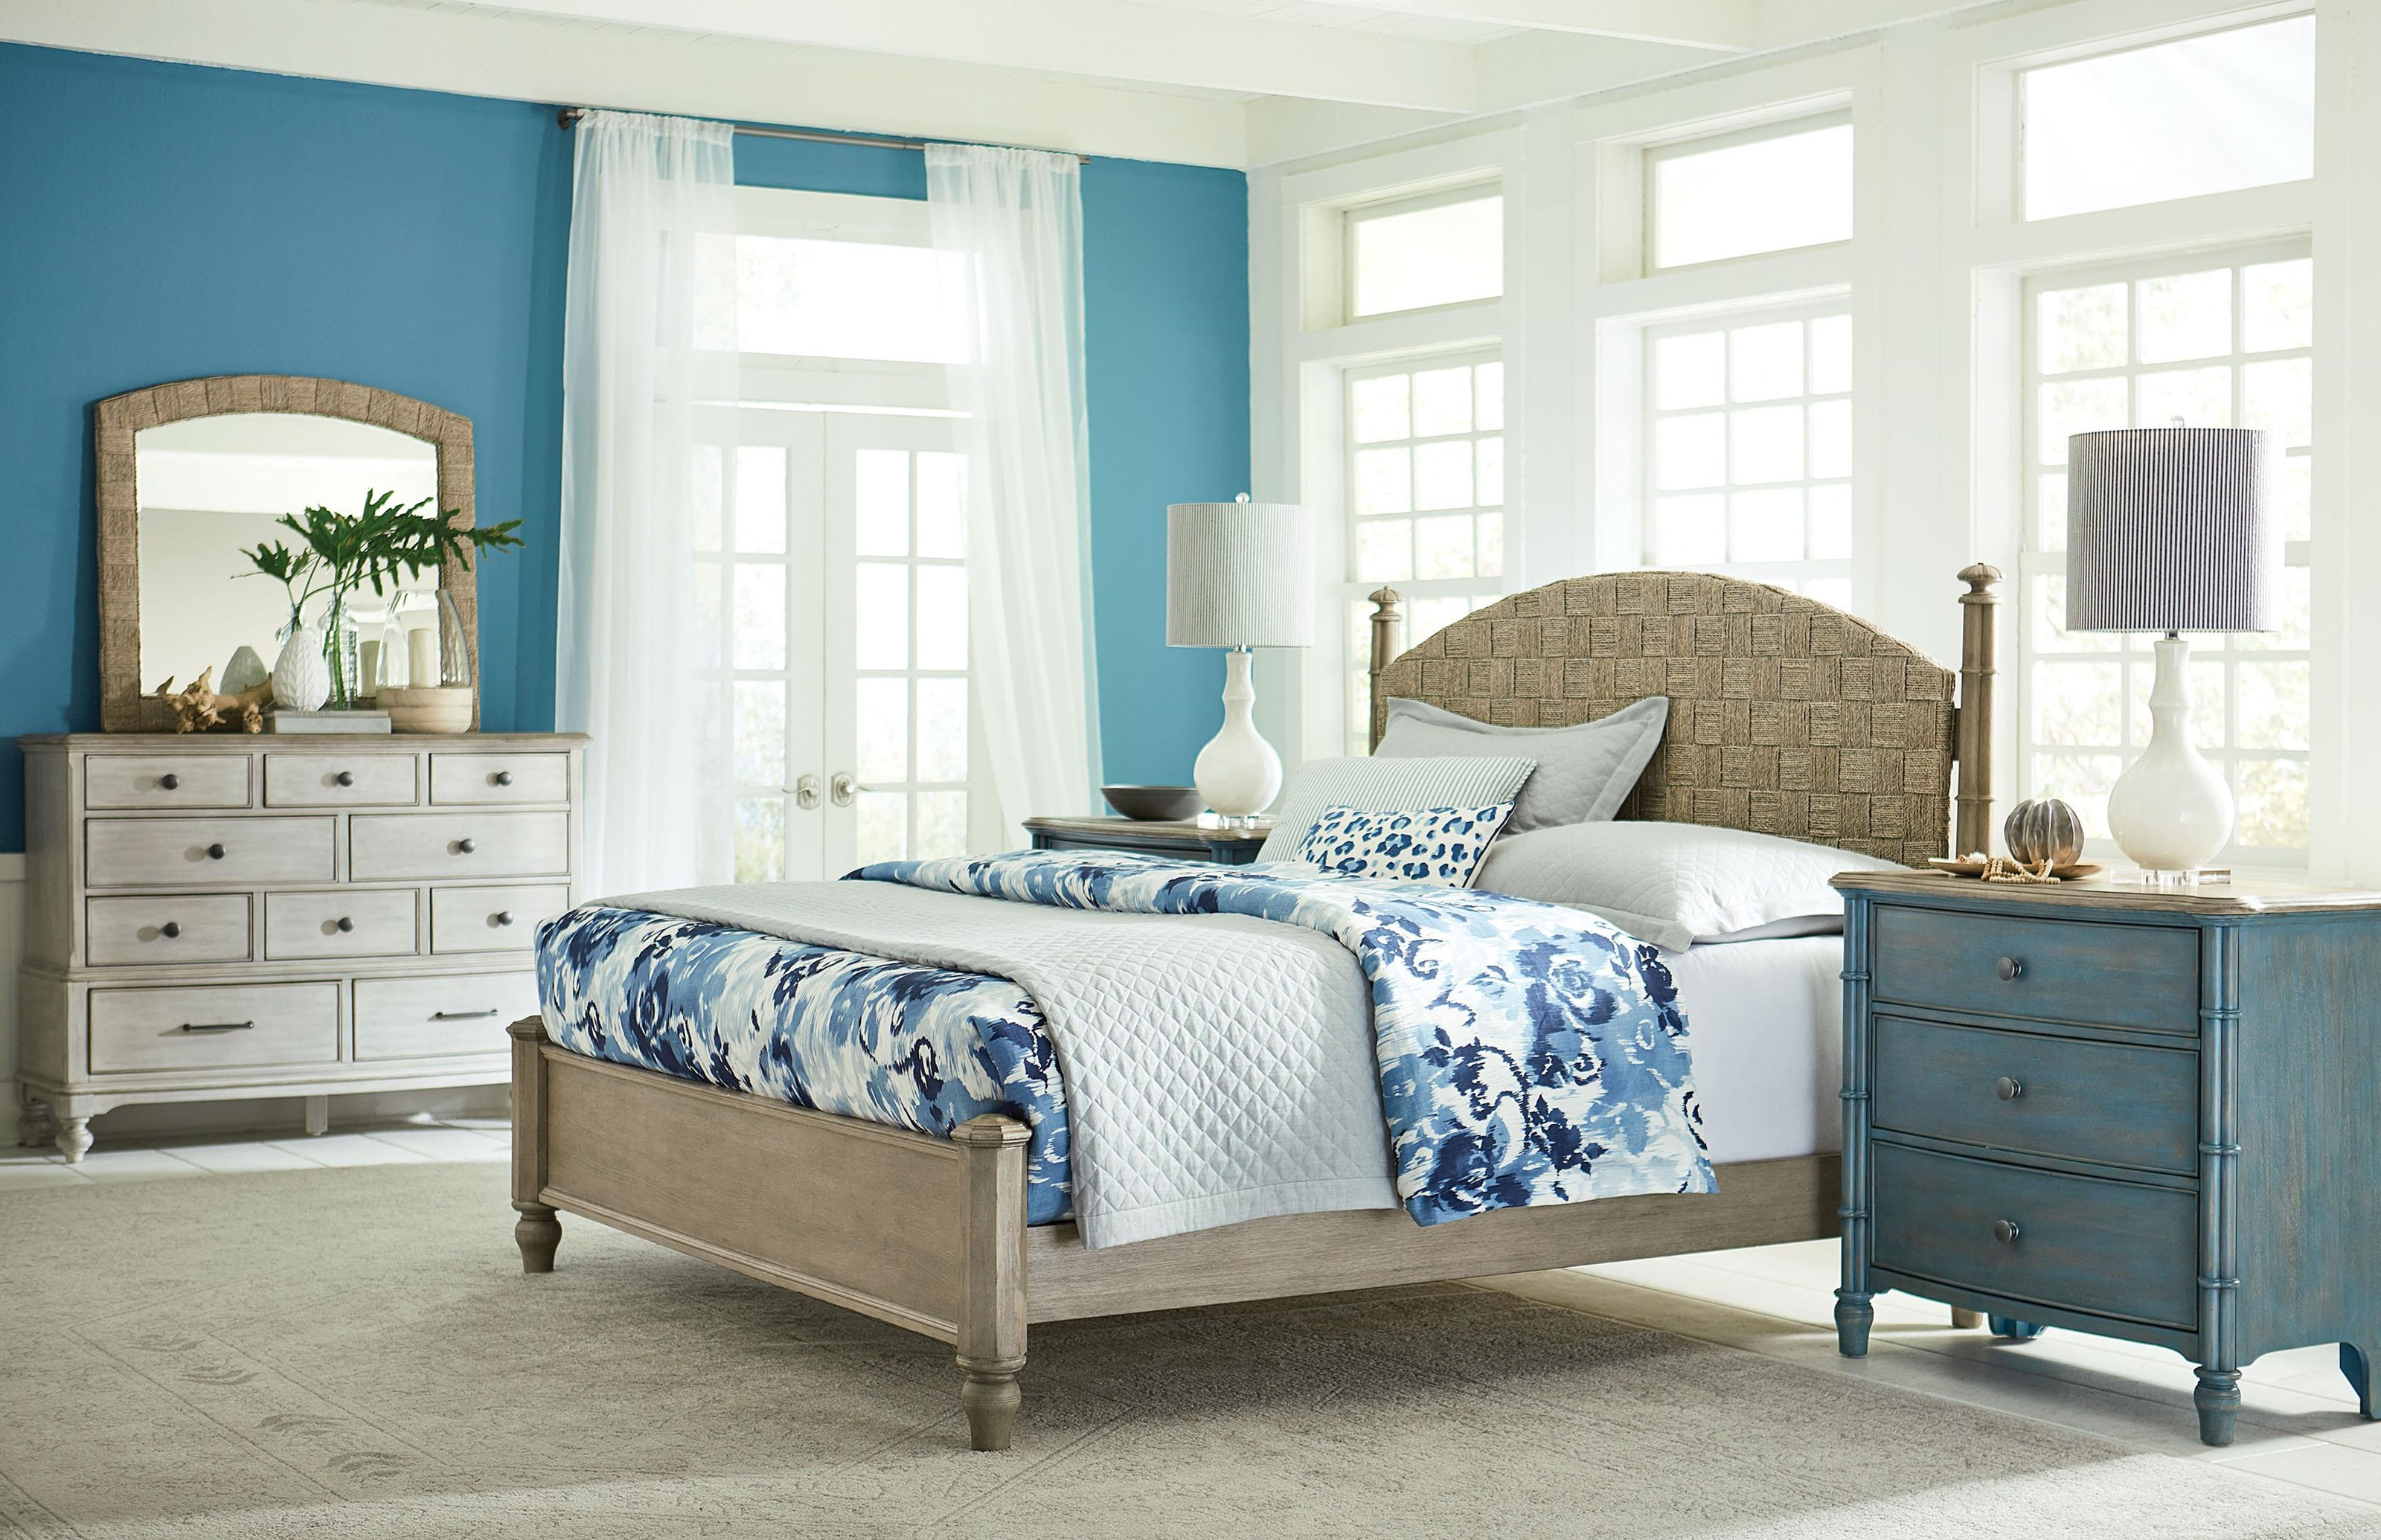 Litchfield Queen Bed Set, Nightstand, Dreser and Mirror by American Drew at Johnny Janosik